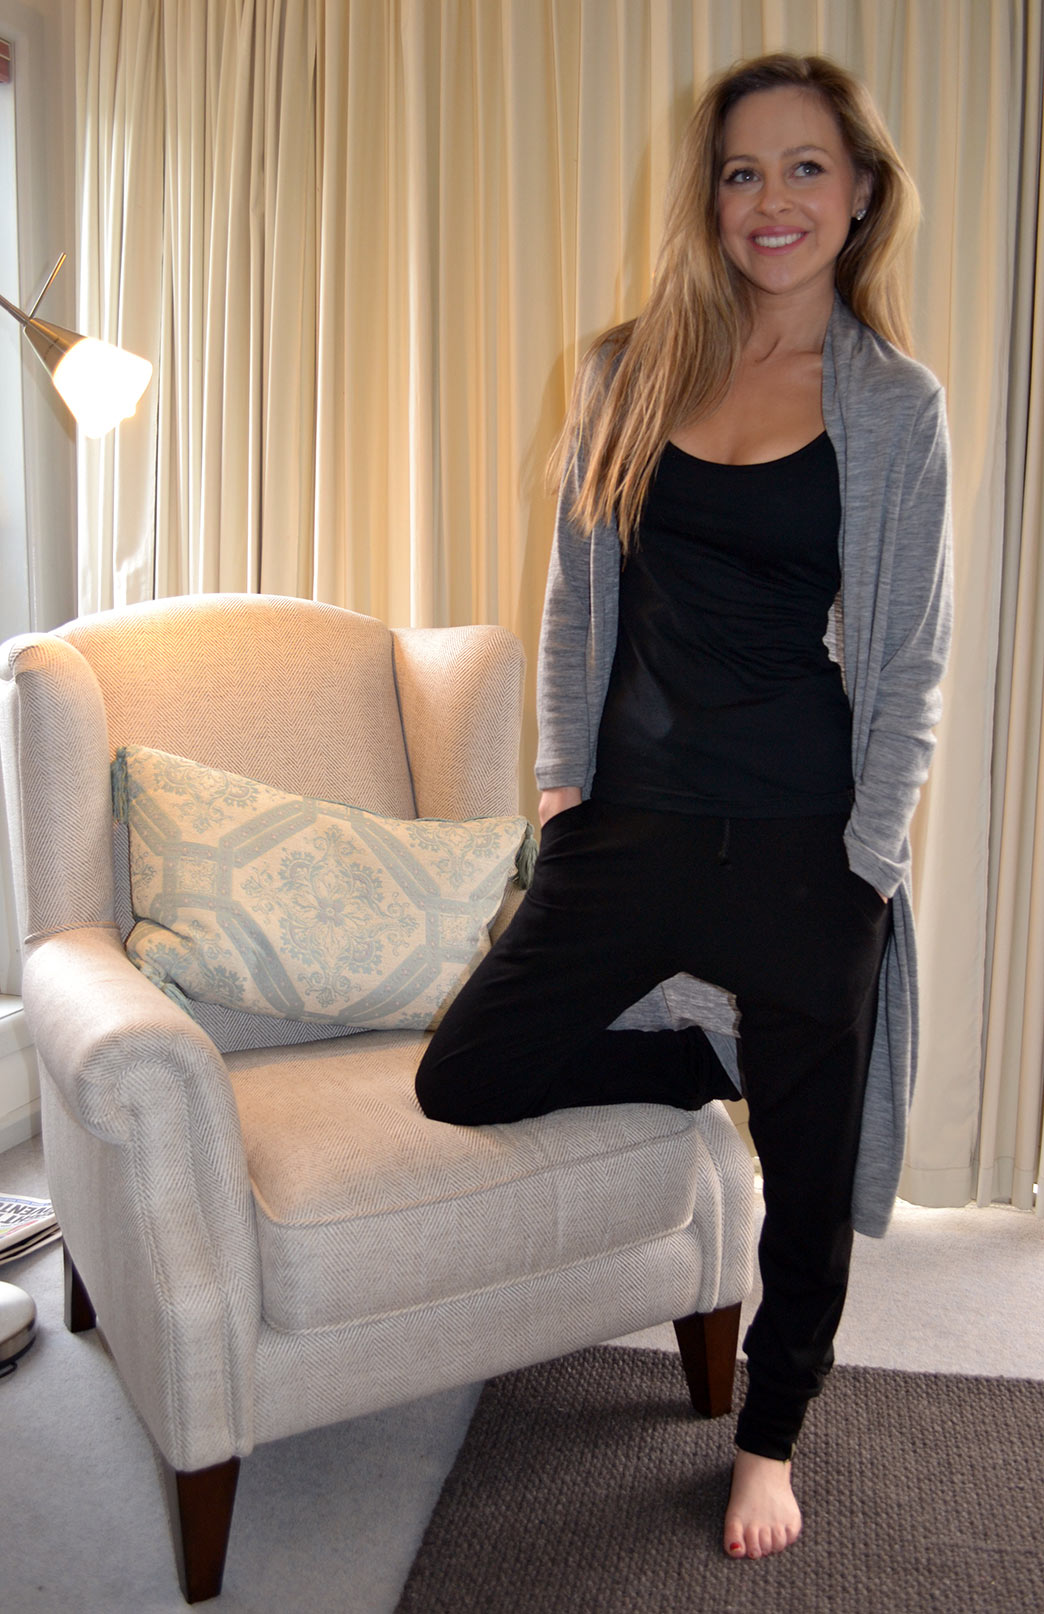 Lounge Set - Women's Black Wool Lounge Set of Jogger Pants and Camisole Top - Smitten Merino Tasmania Australia